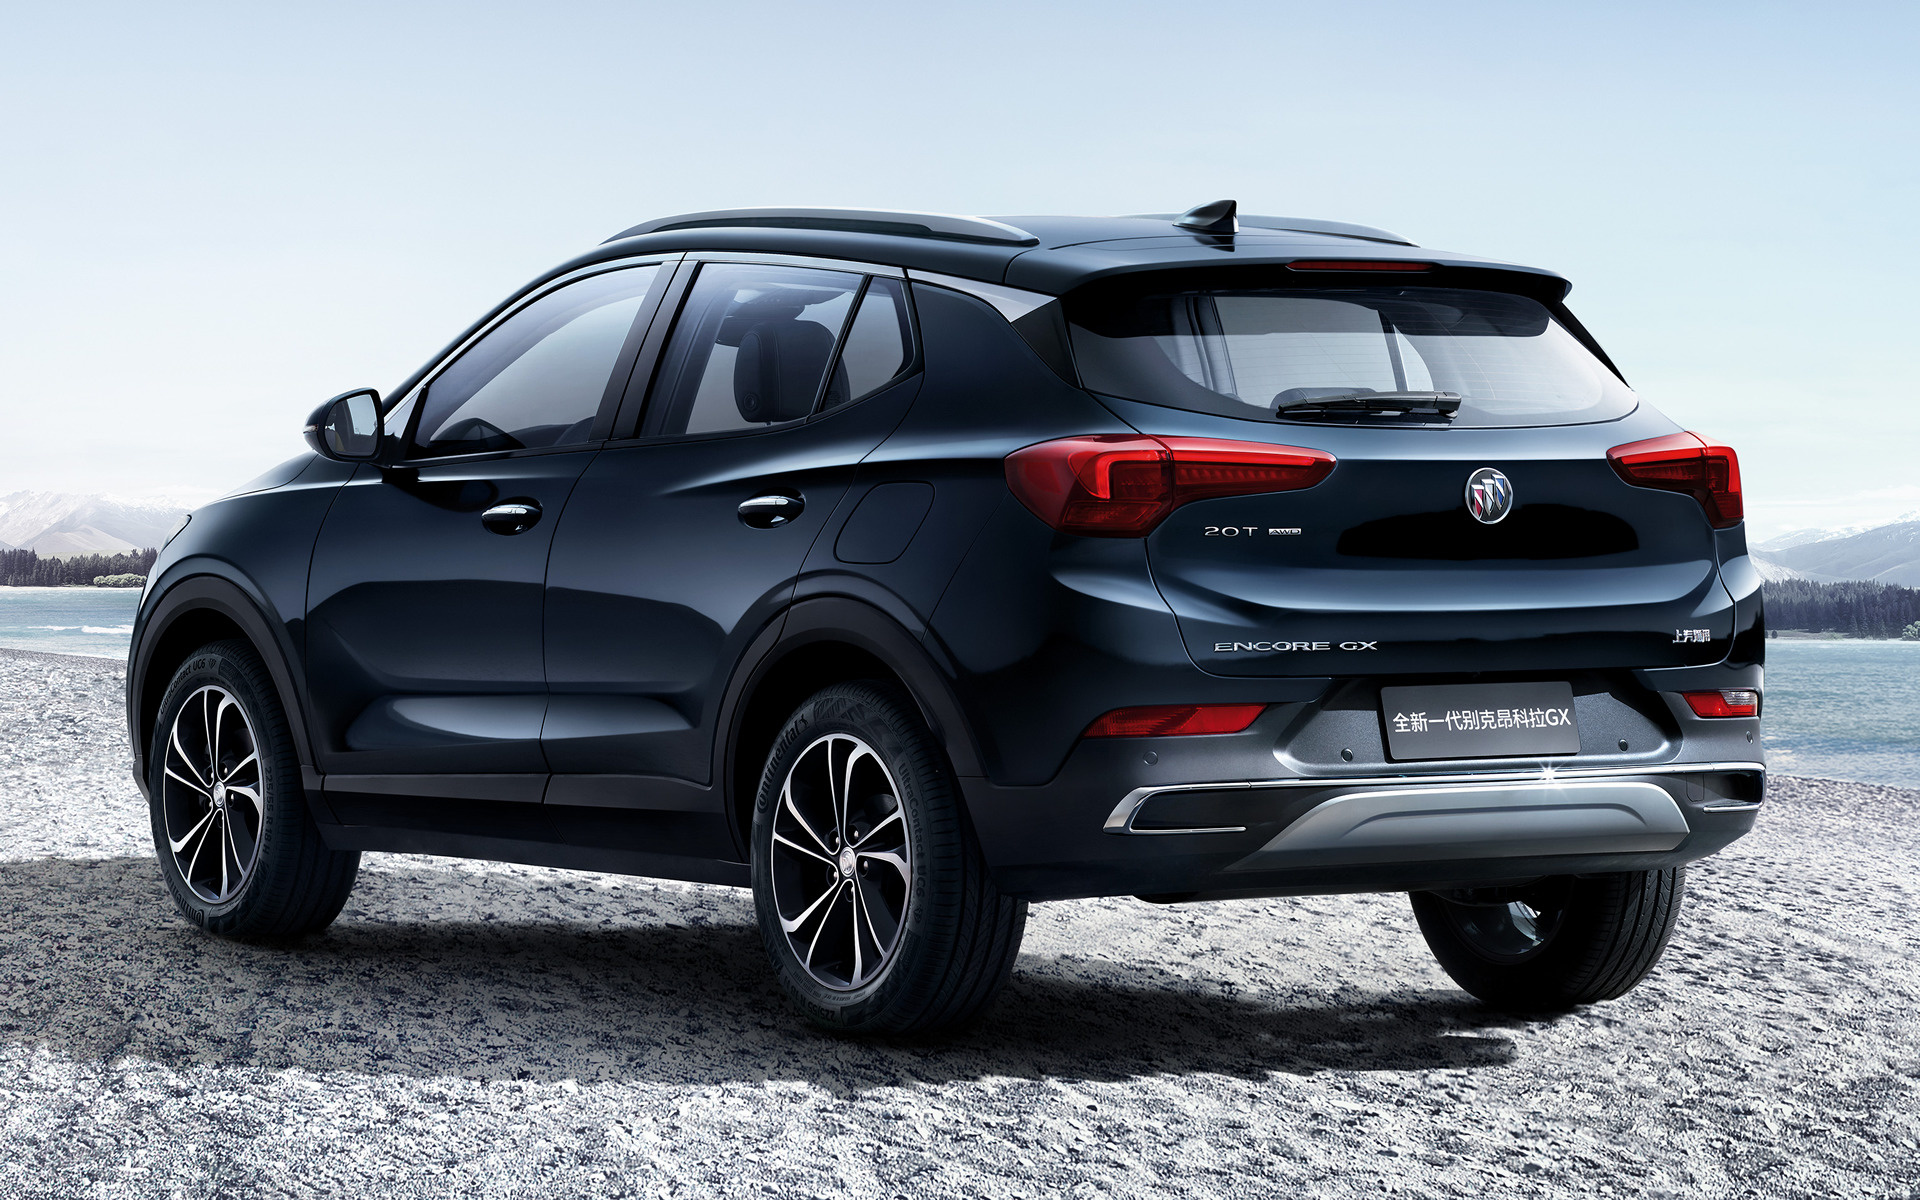 2020 Buick Encore GX (CN) - Wallpapers and HD Images | Car ...